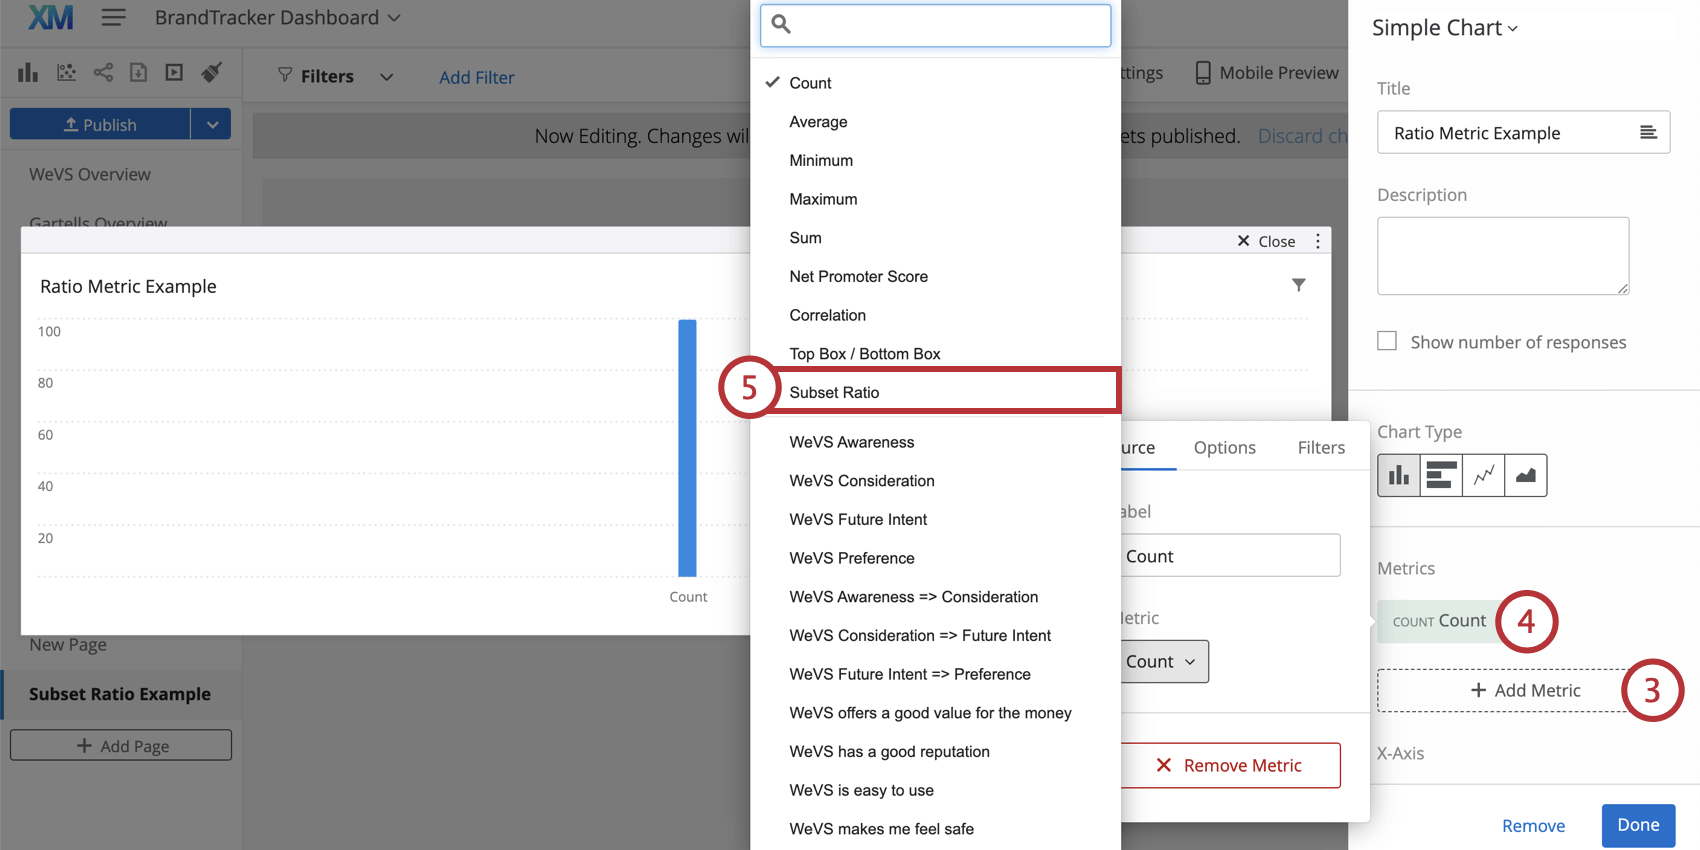 Subset Ratio is selected in the Metric drop down menu while configuring a widget